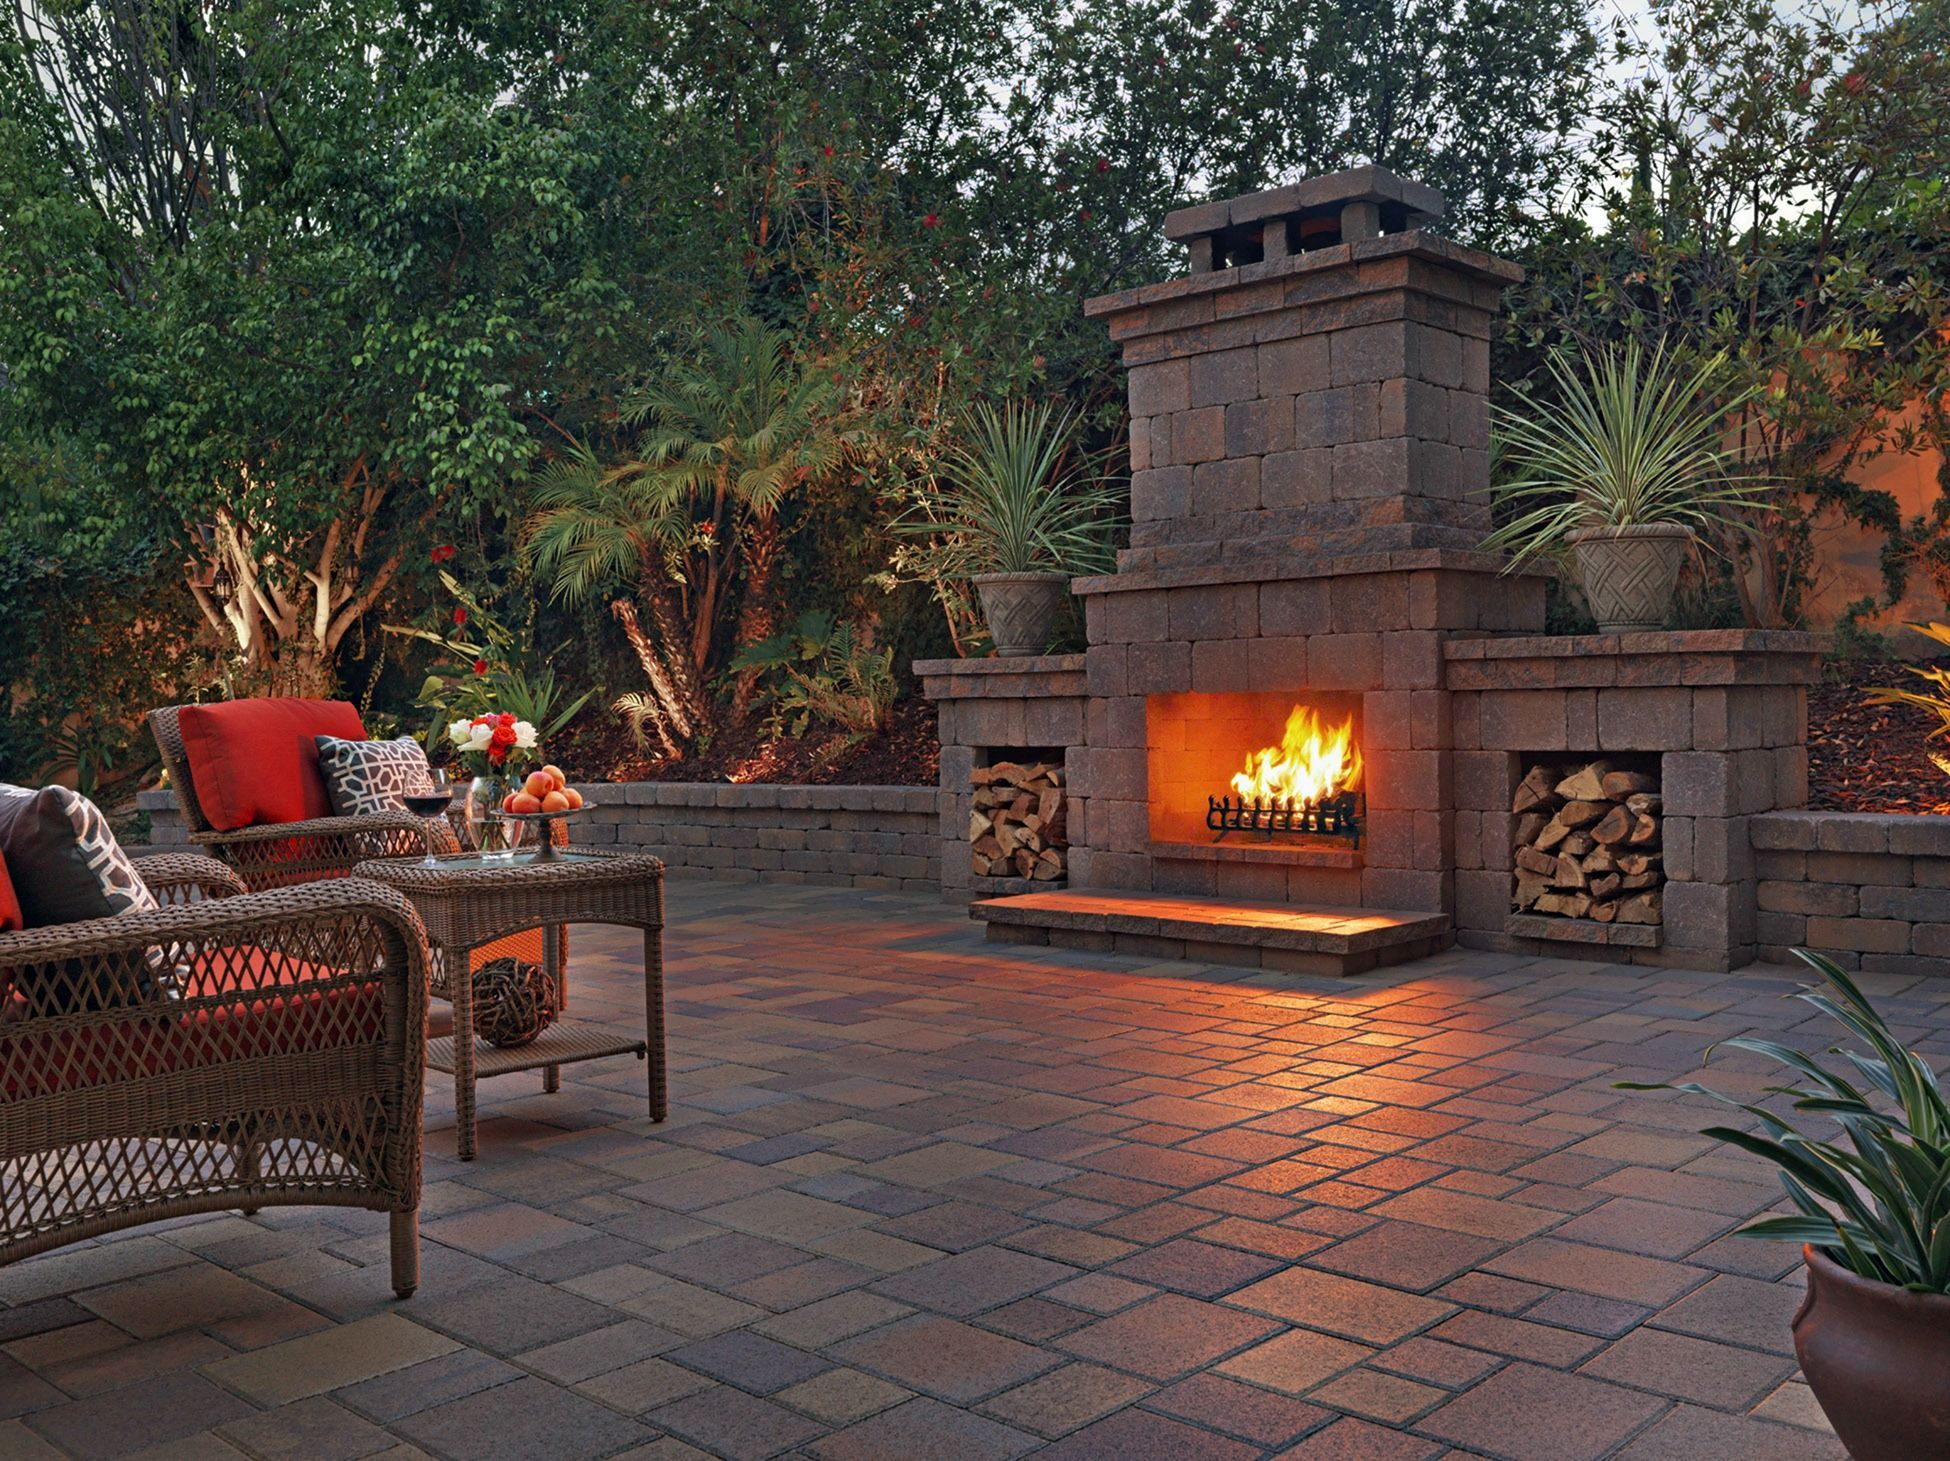 15 Amazing Outdoor Fireplace Design Ideas For Your ... on Amazing Outdoor Fireplaces  id=33730